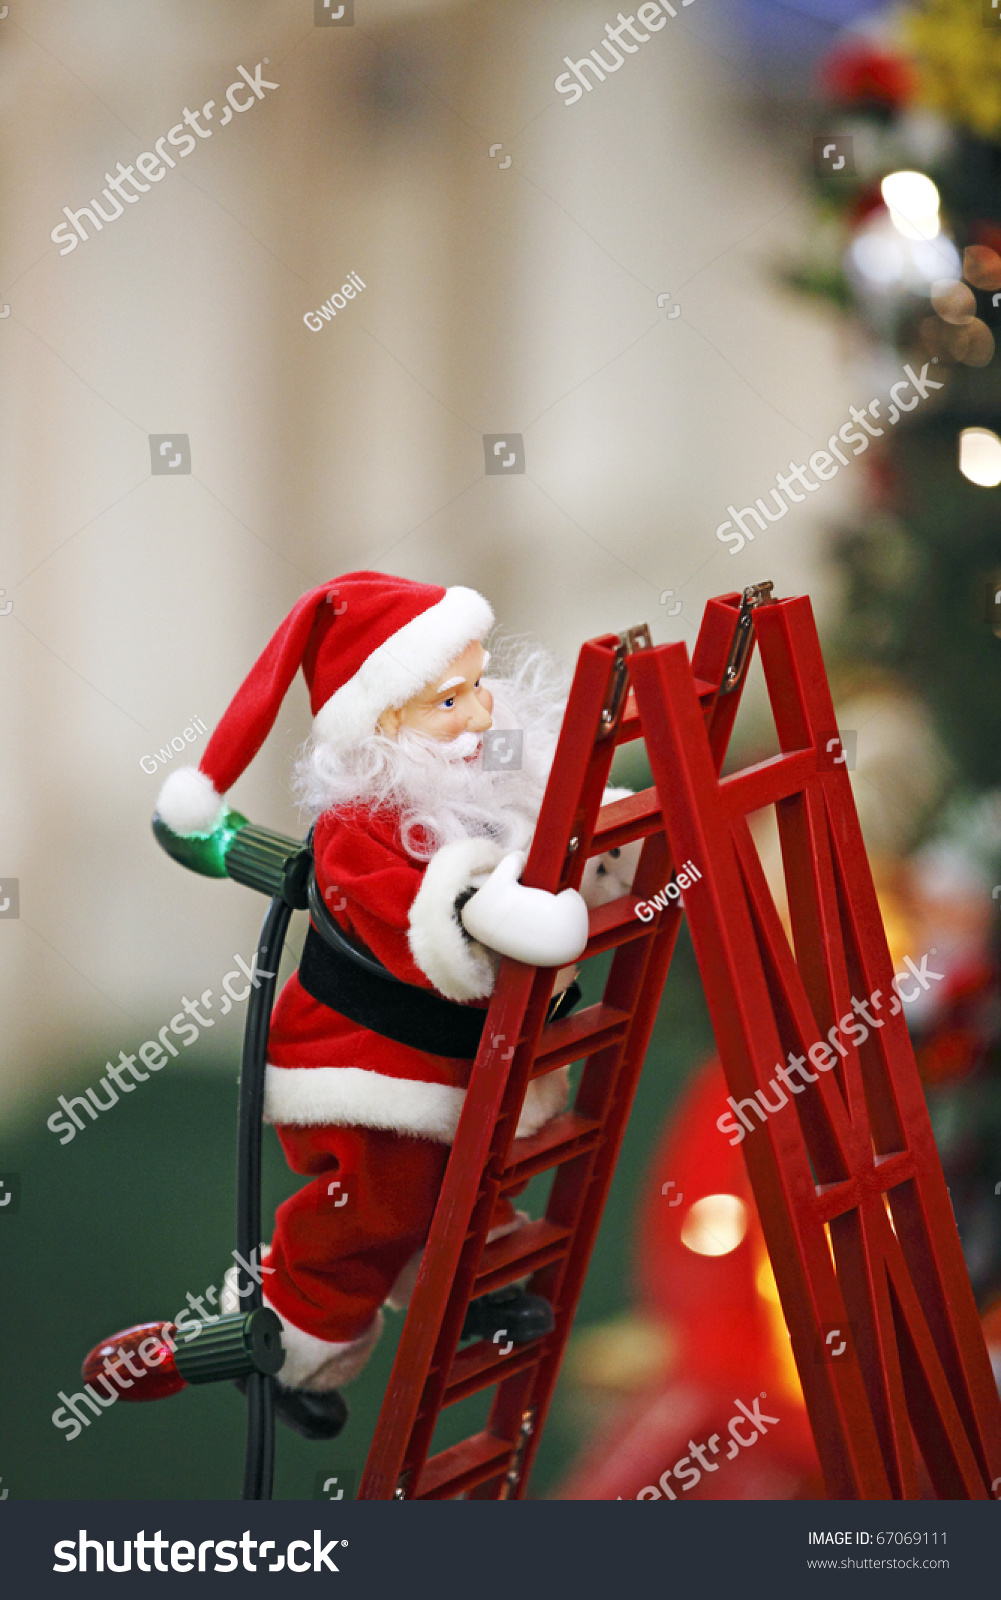 Santa Claus Climbing Up A Red Ladder Carrying Christmas